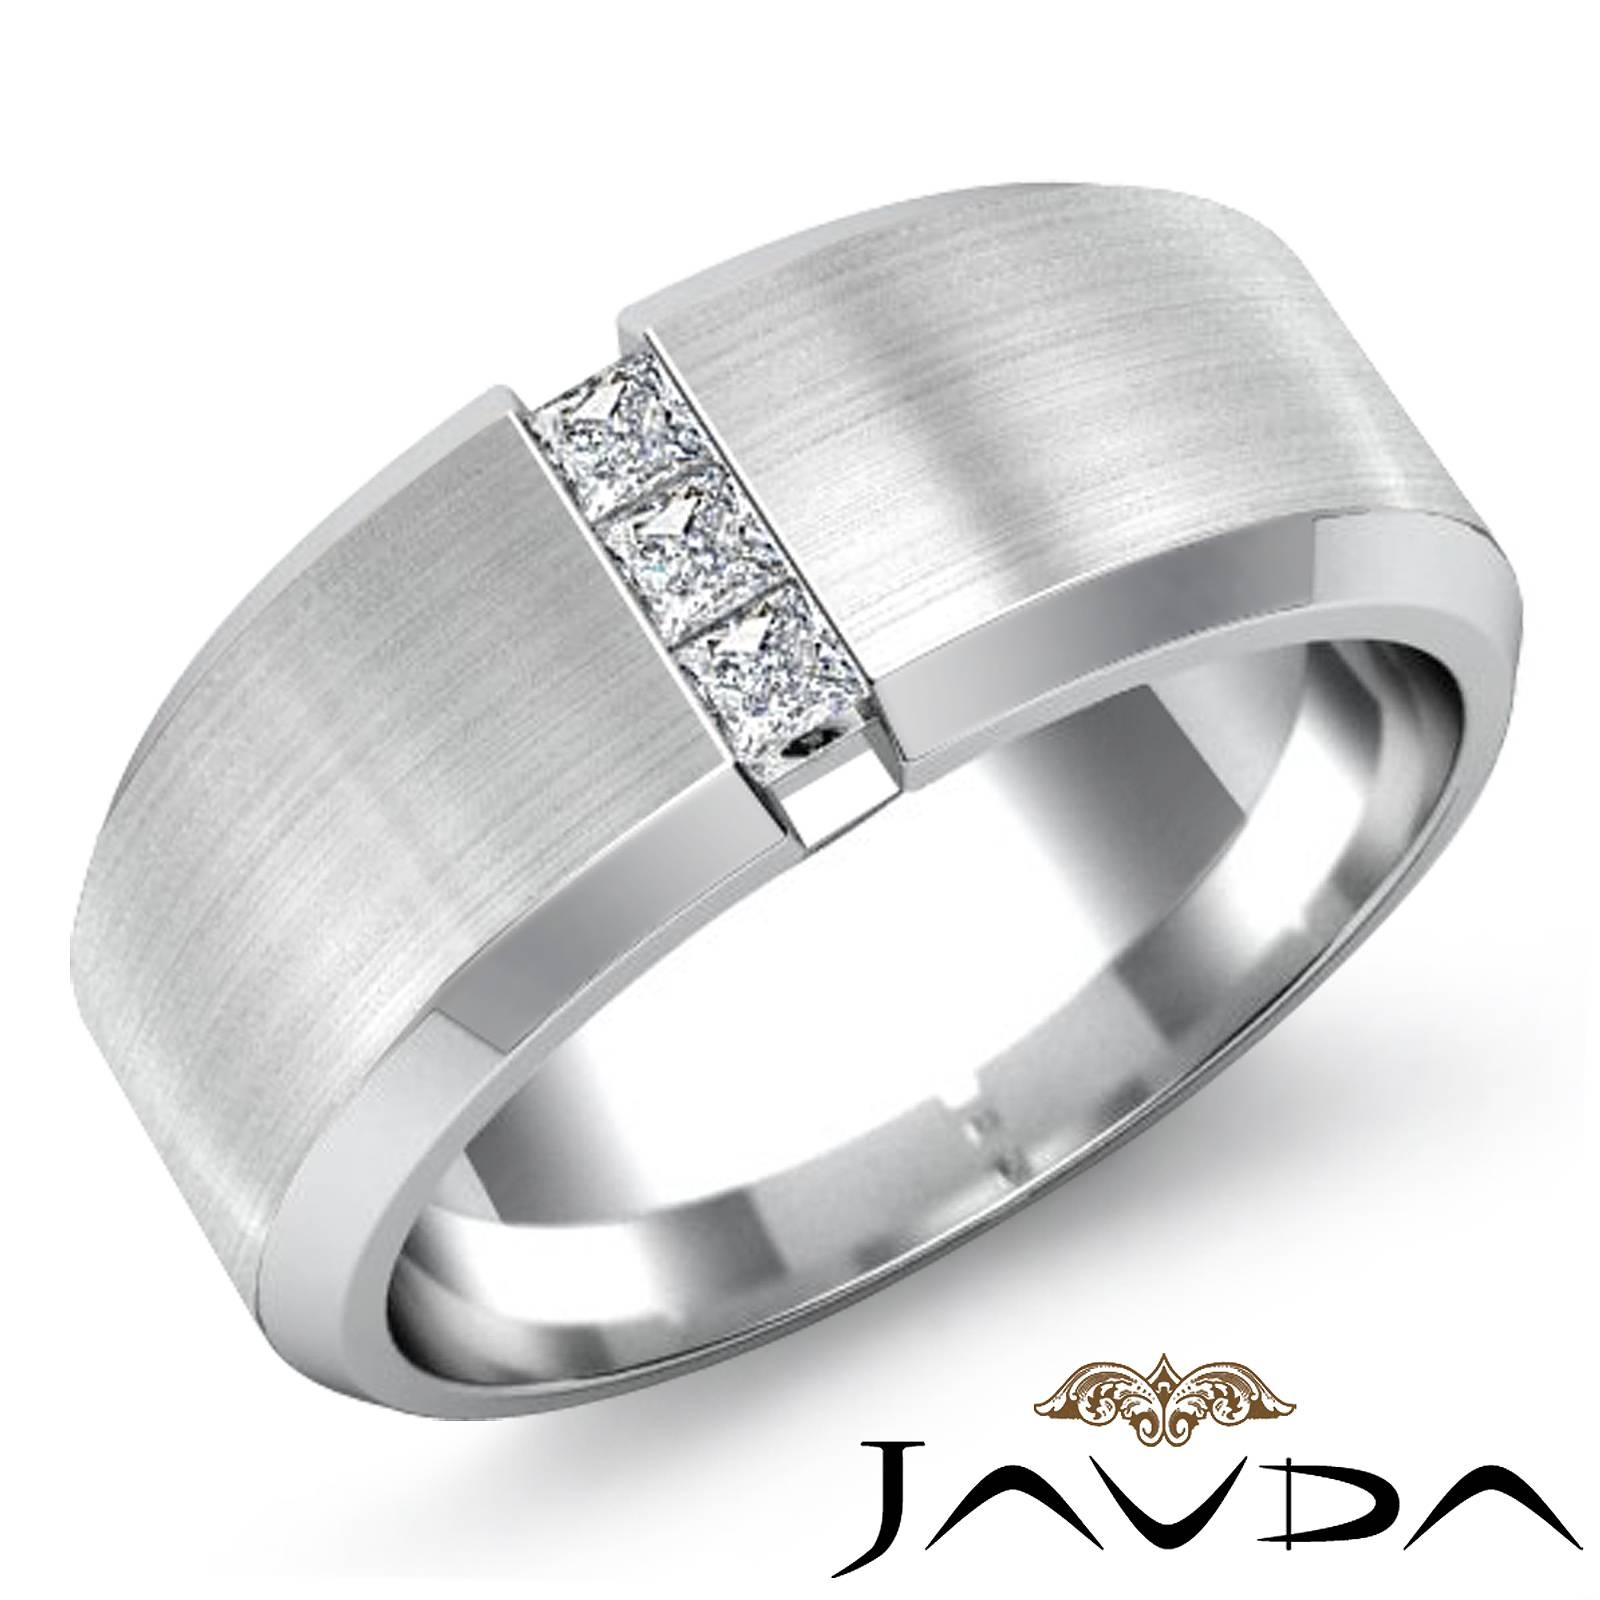 Good Engraved Mens Wedding Rings With Gold Bands Unique Mens Regarding Mens Wedding Diamond Rings (View 7 of 15)